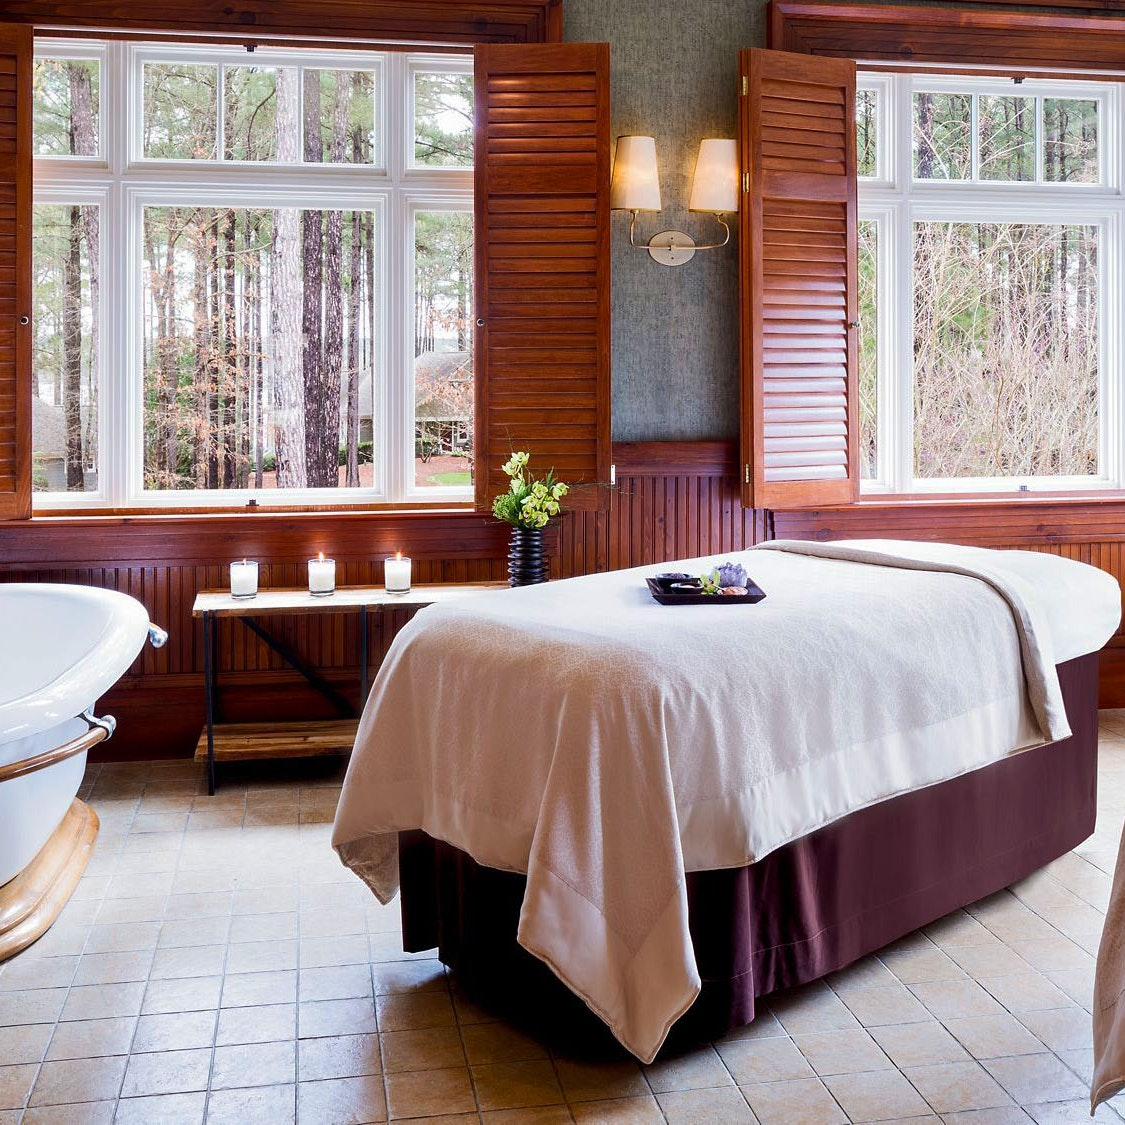 6 Can't-Miss Spas If You're Headed to Atlanta, Georgia